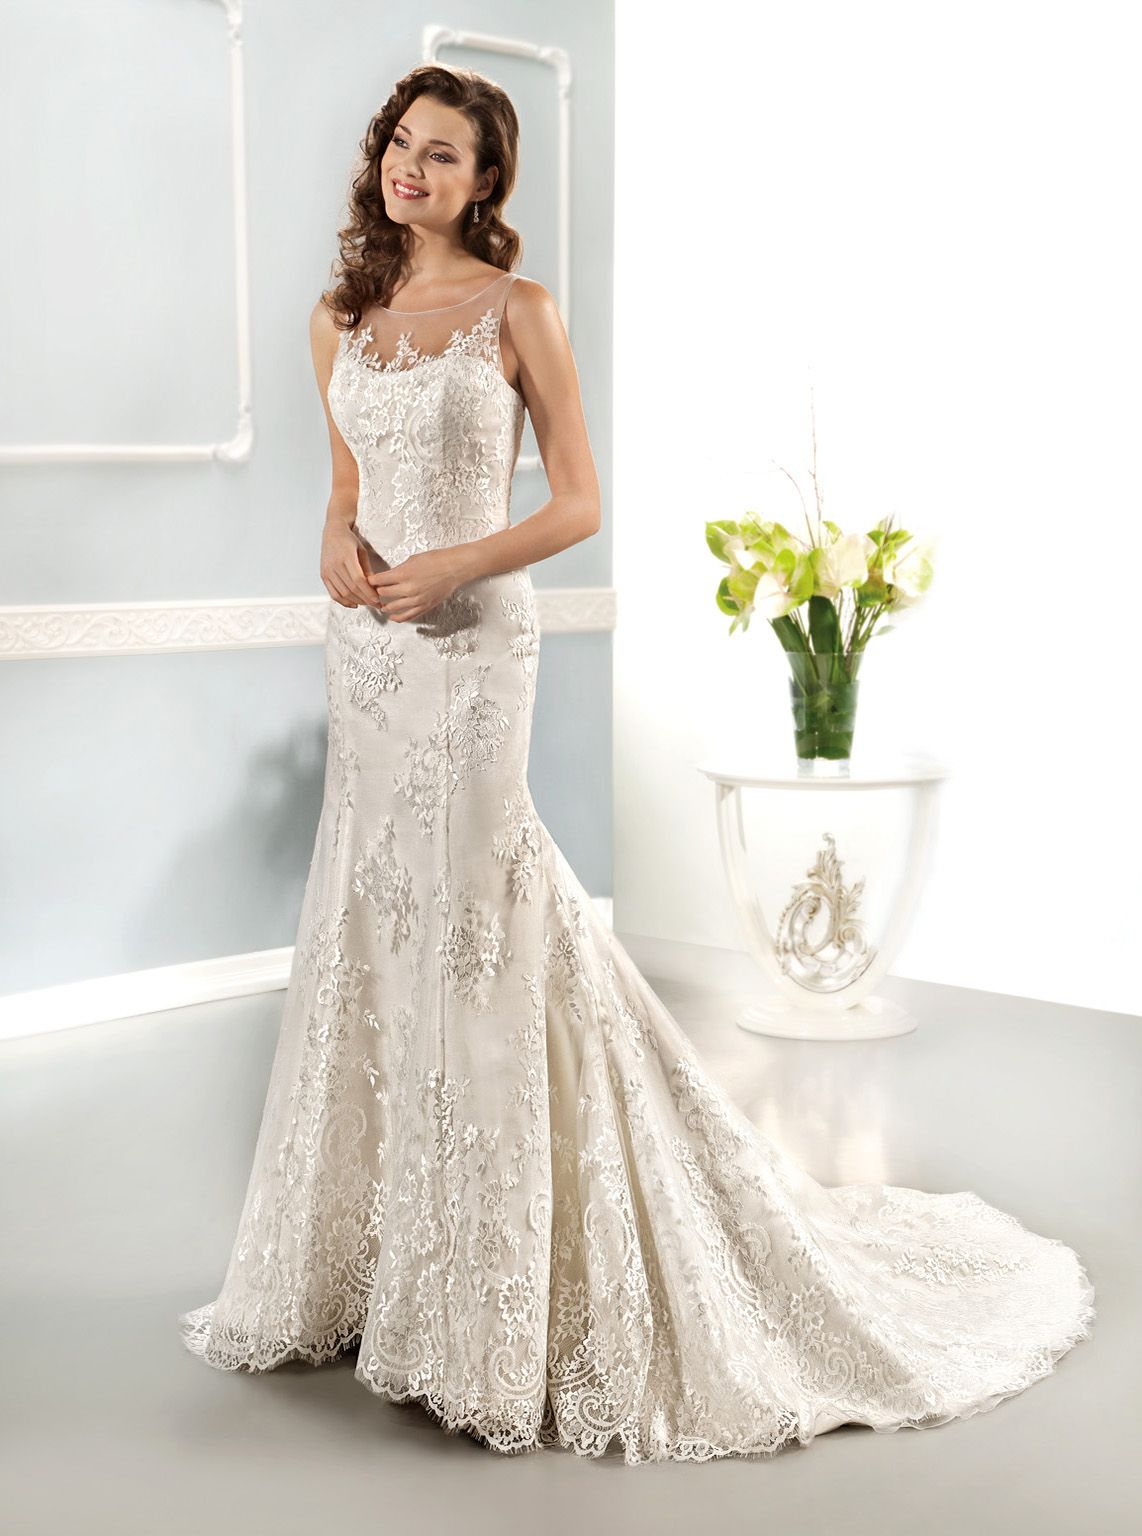 2014 Cosmobella. All lace fit and flare with illusion